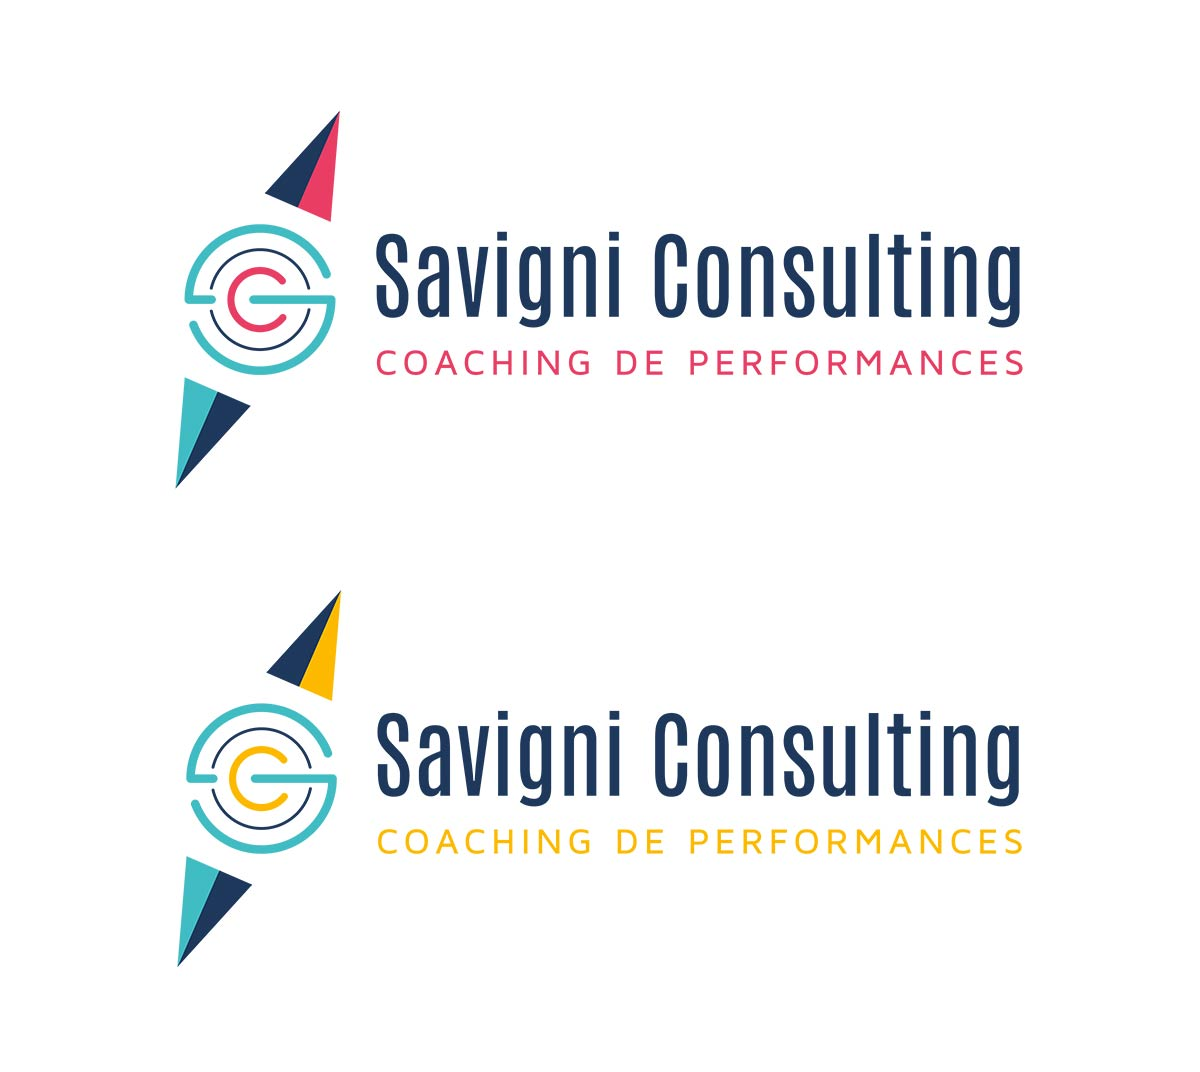 savigni-consulting-logo-creation